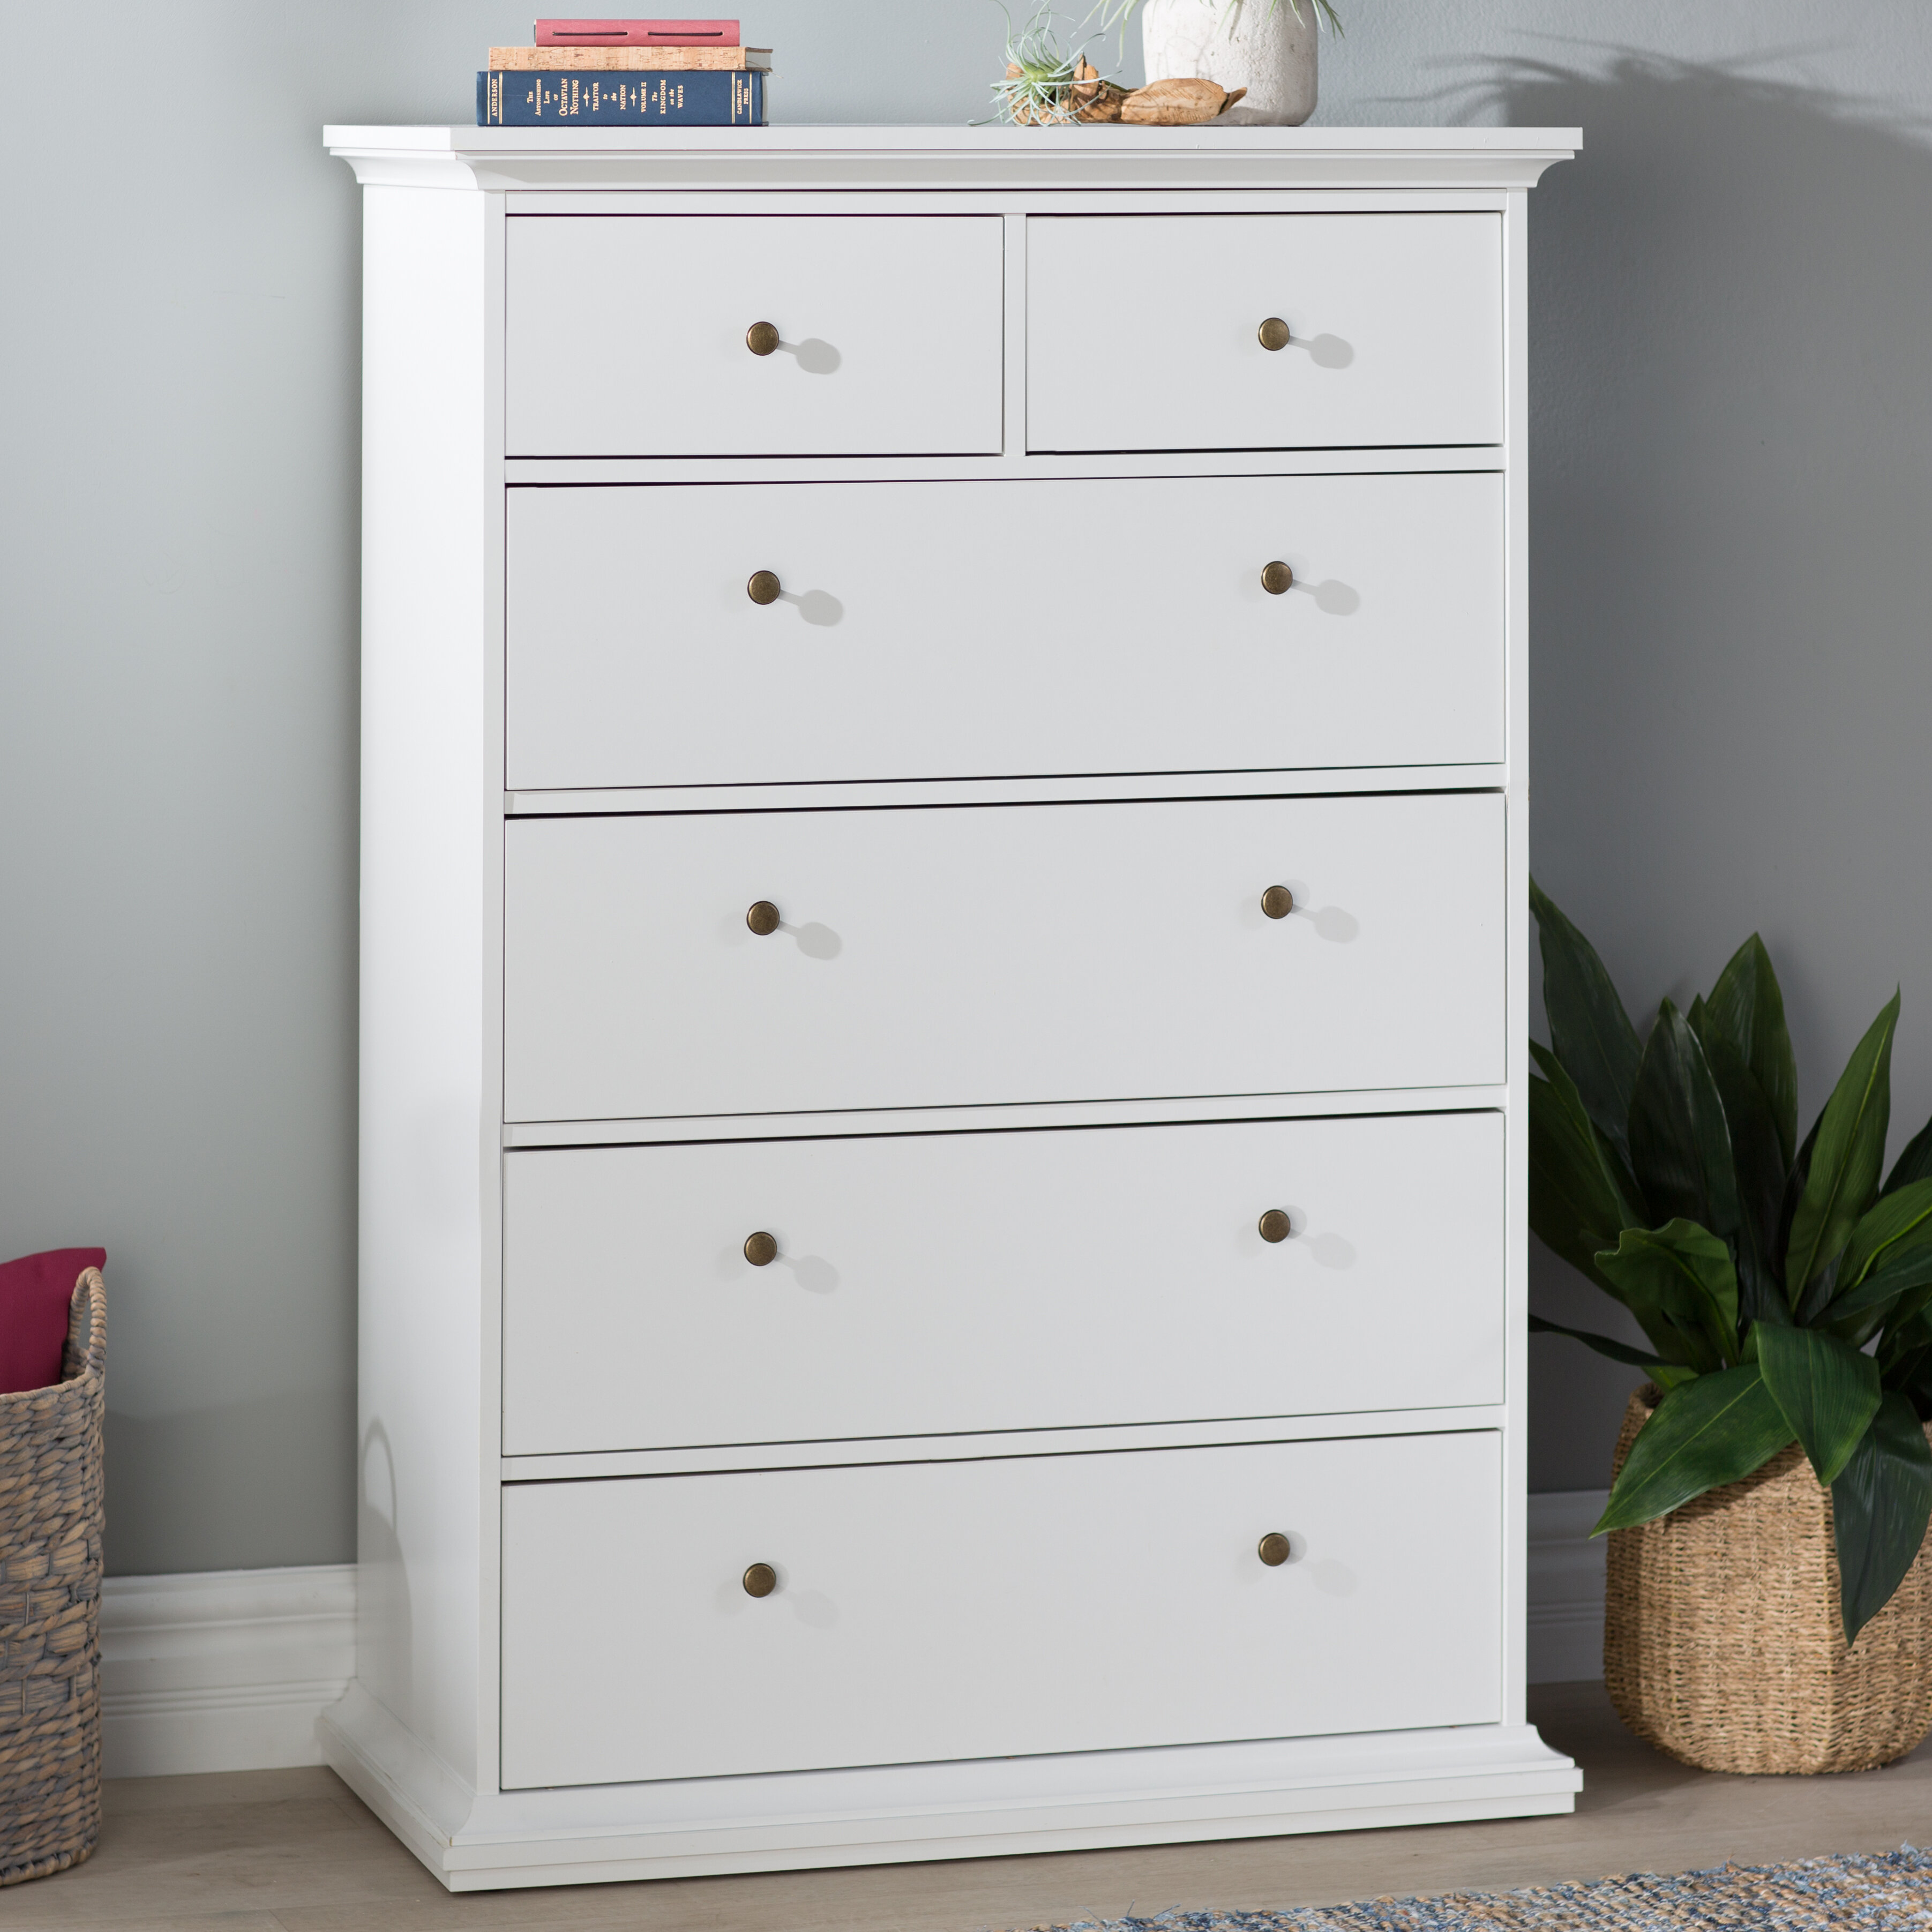 the webster numbers chest of high under drawer drawers also aria listed wht manufacturer sometimes following is temple gloss sku